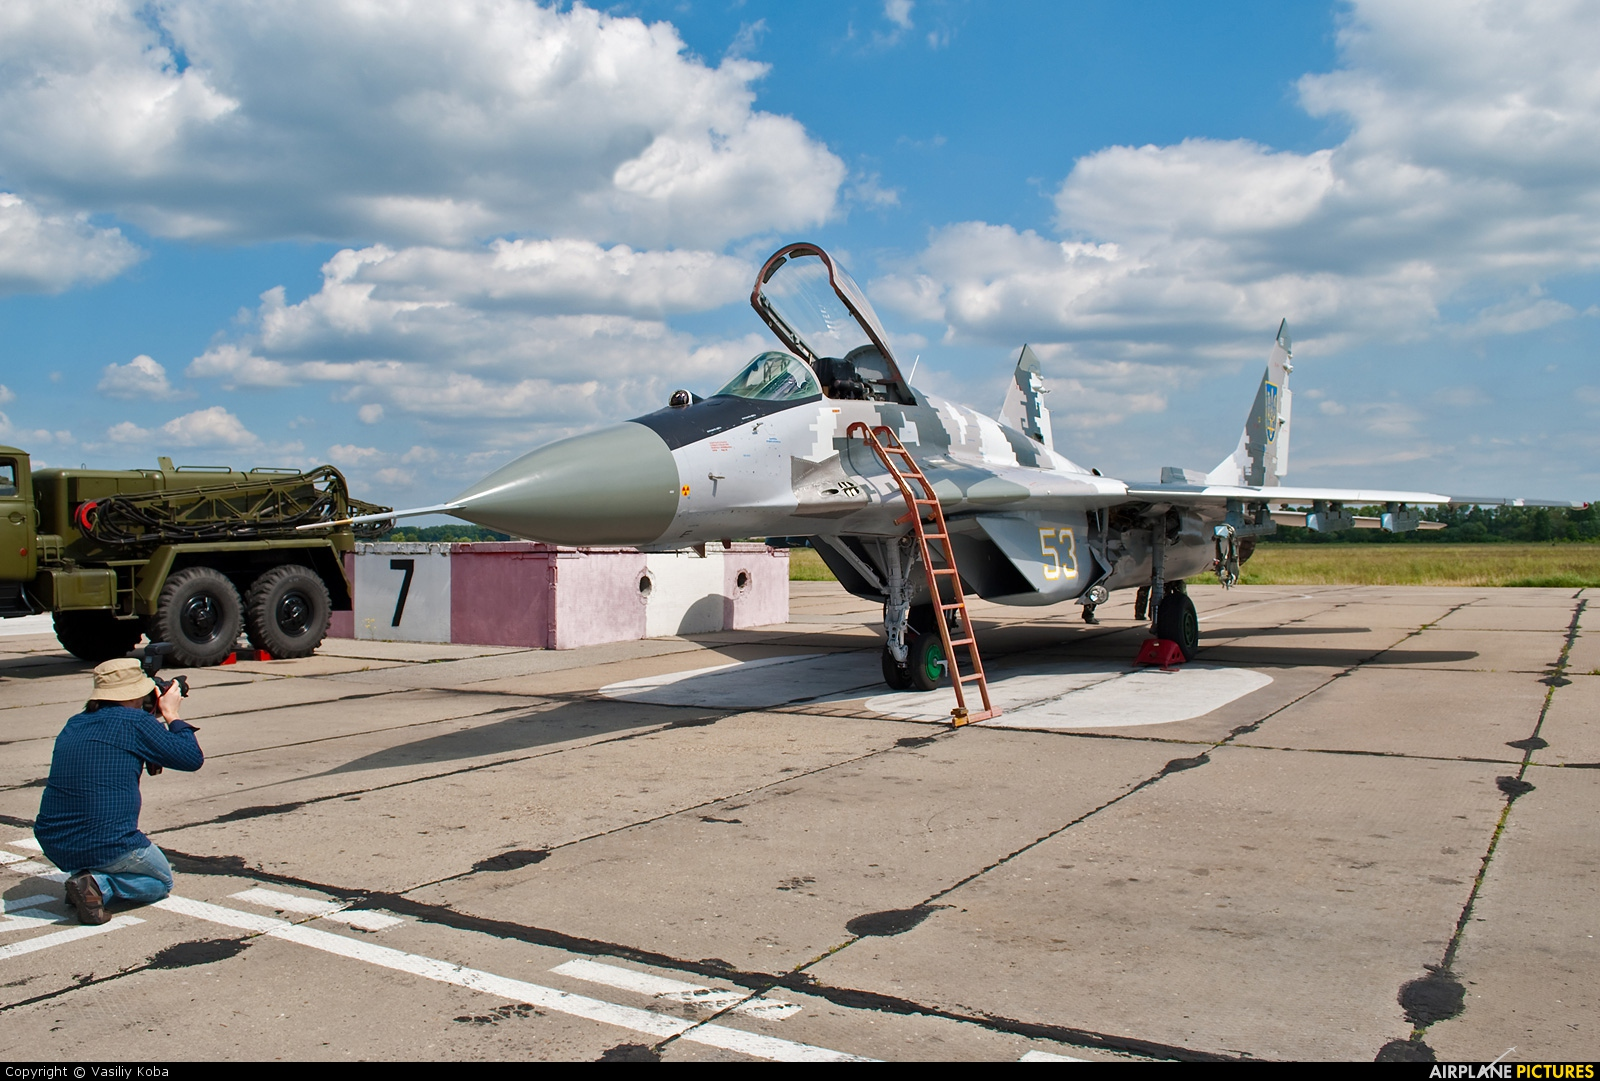 Ukraine - Air Force 53 aircraft at Vasilkov